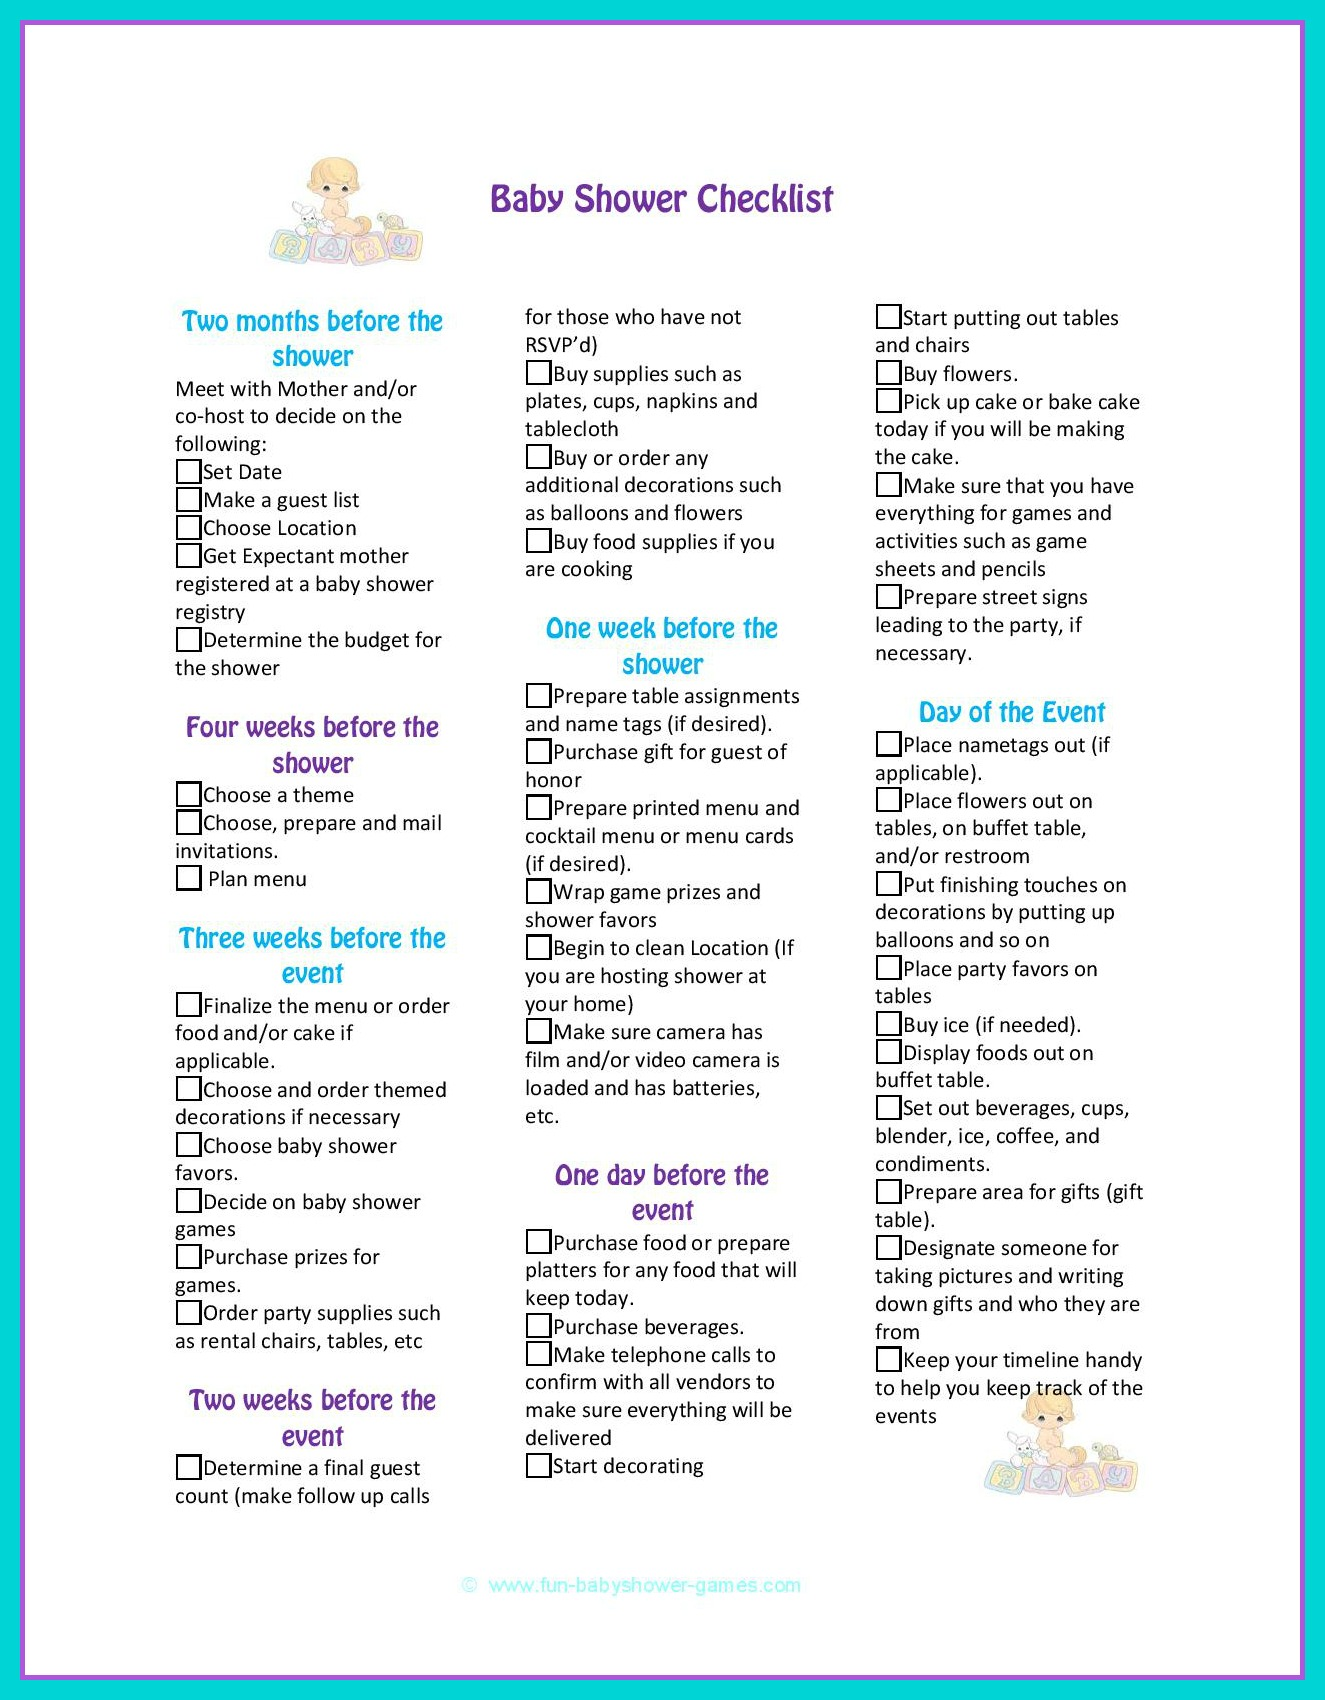 Baby Shower To Do List Template : shower, template, Complete, Shower, Planning, Guide